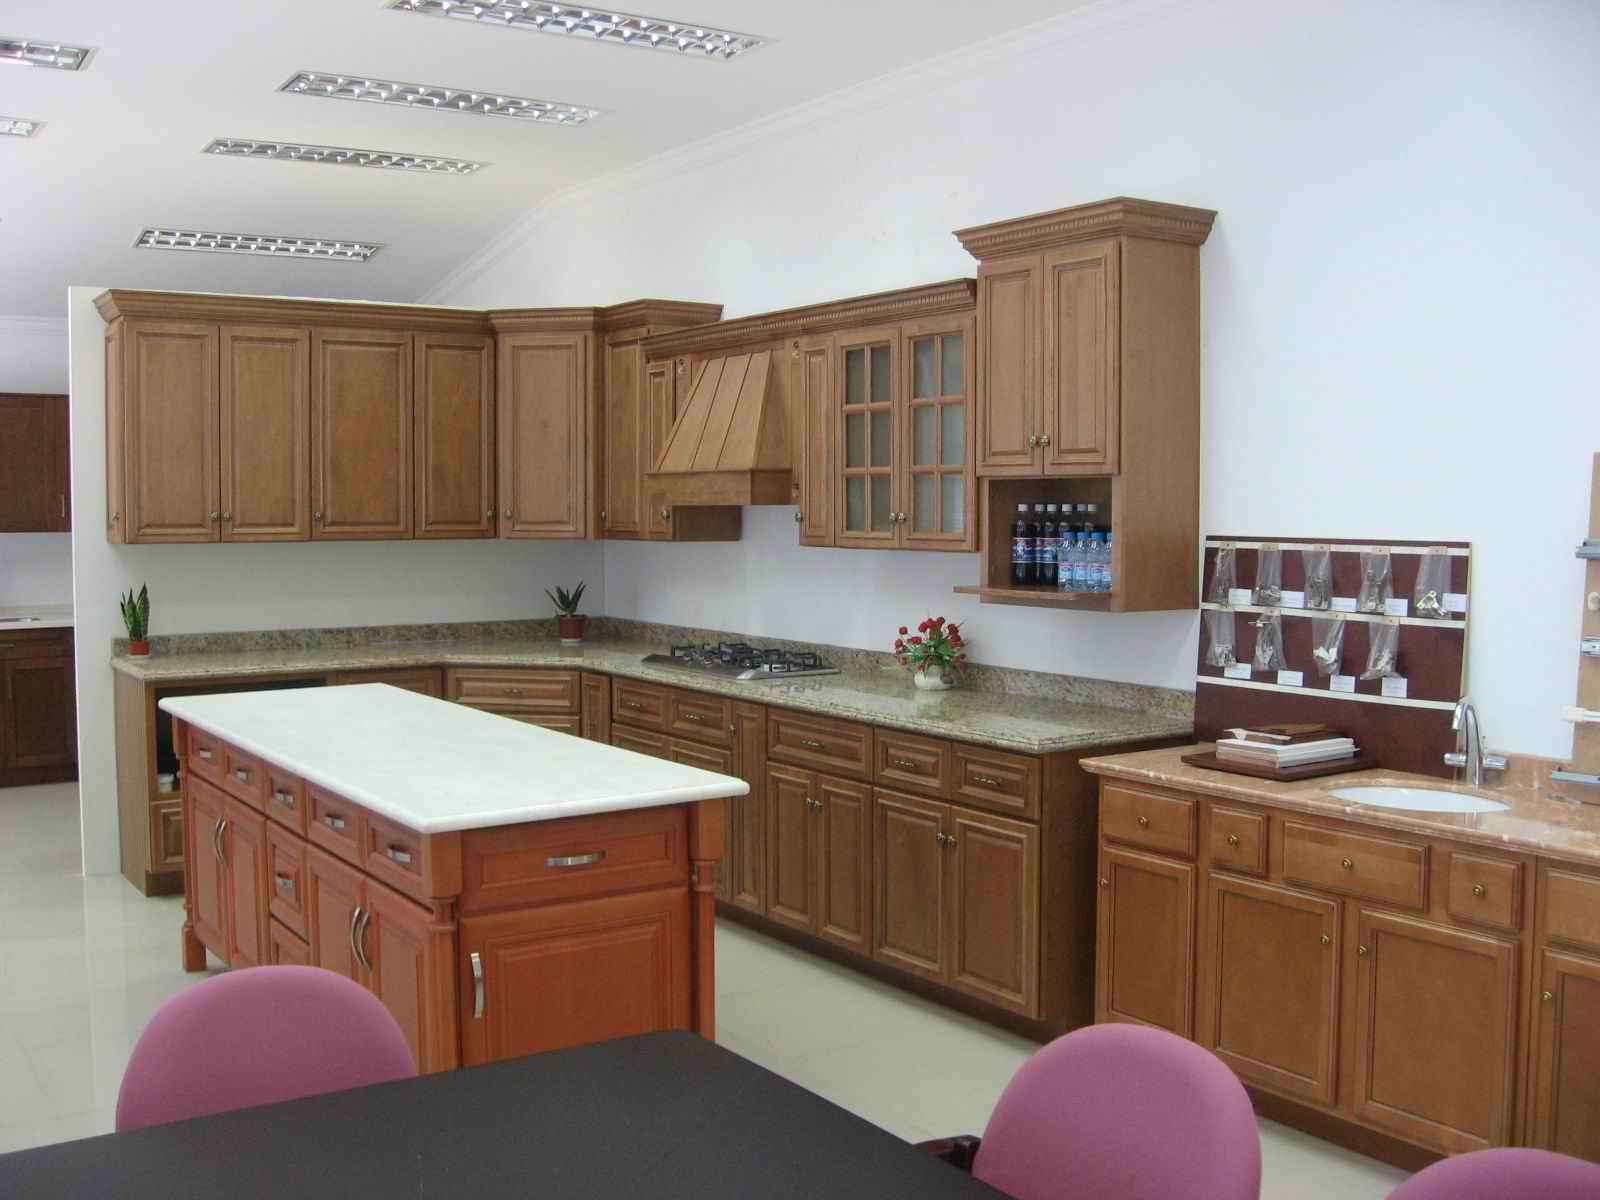 nice-discount-wood-kitchen-cabinets-with-kitchen-cabinet-sets-cheap-cabinets-for-kitchens-in-orange-shade